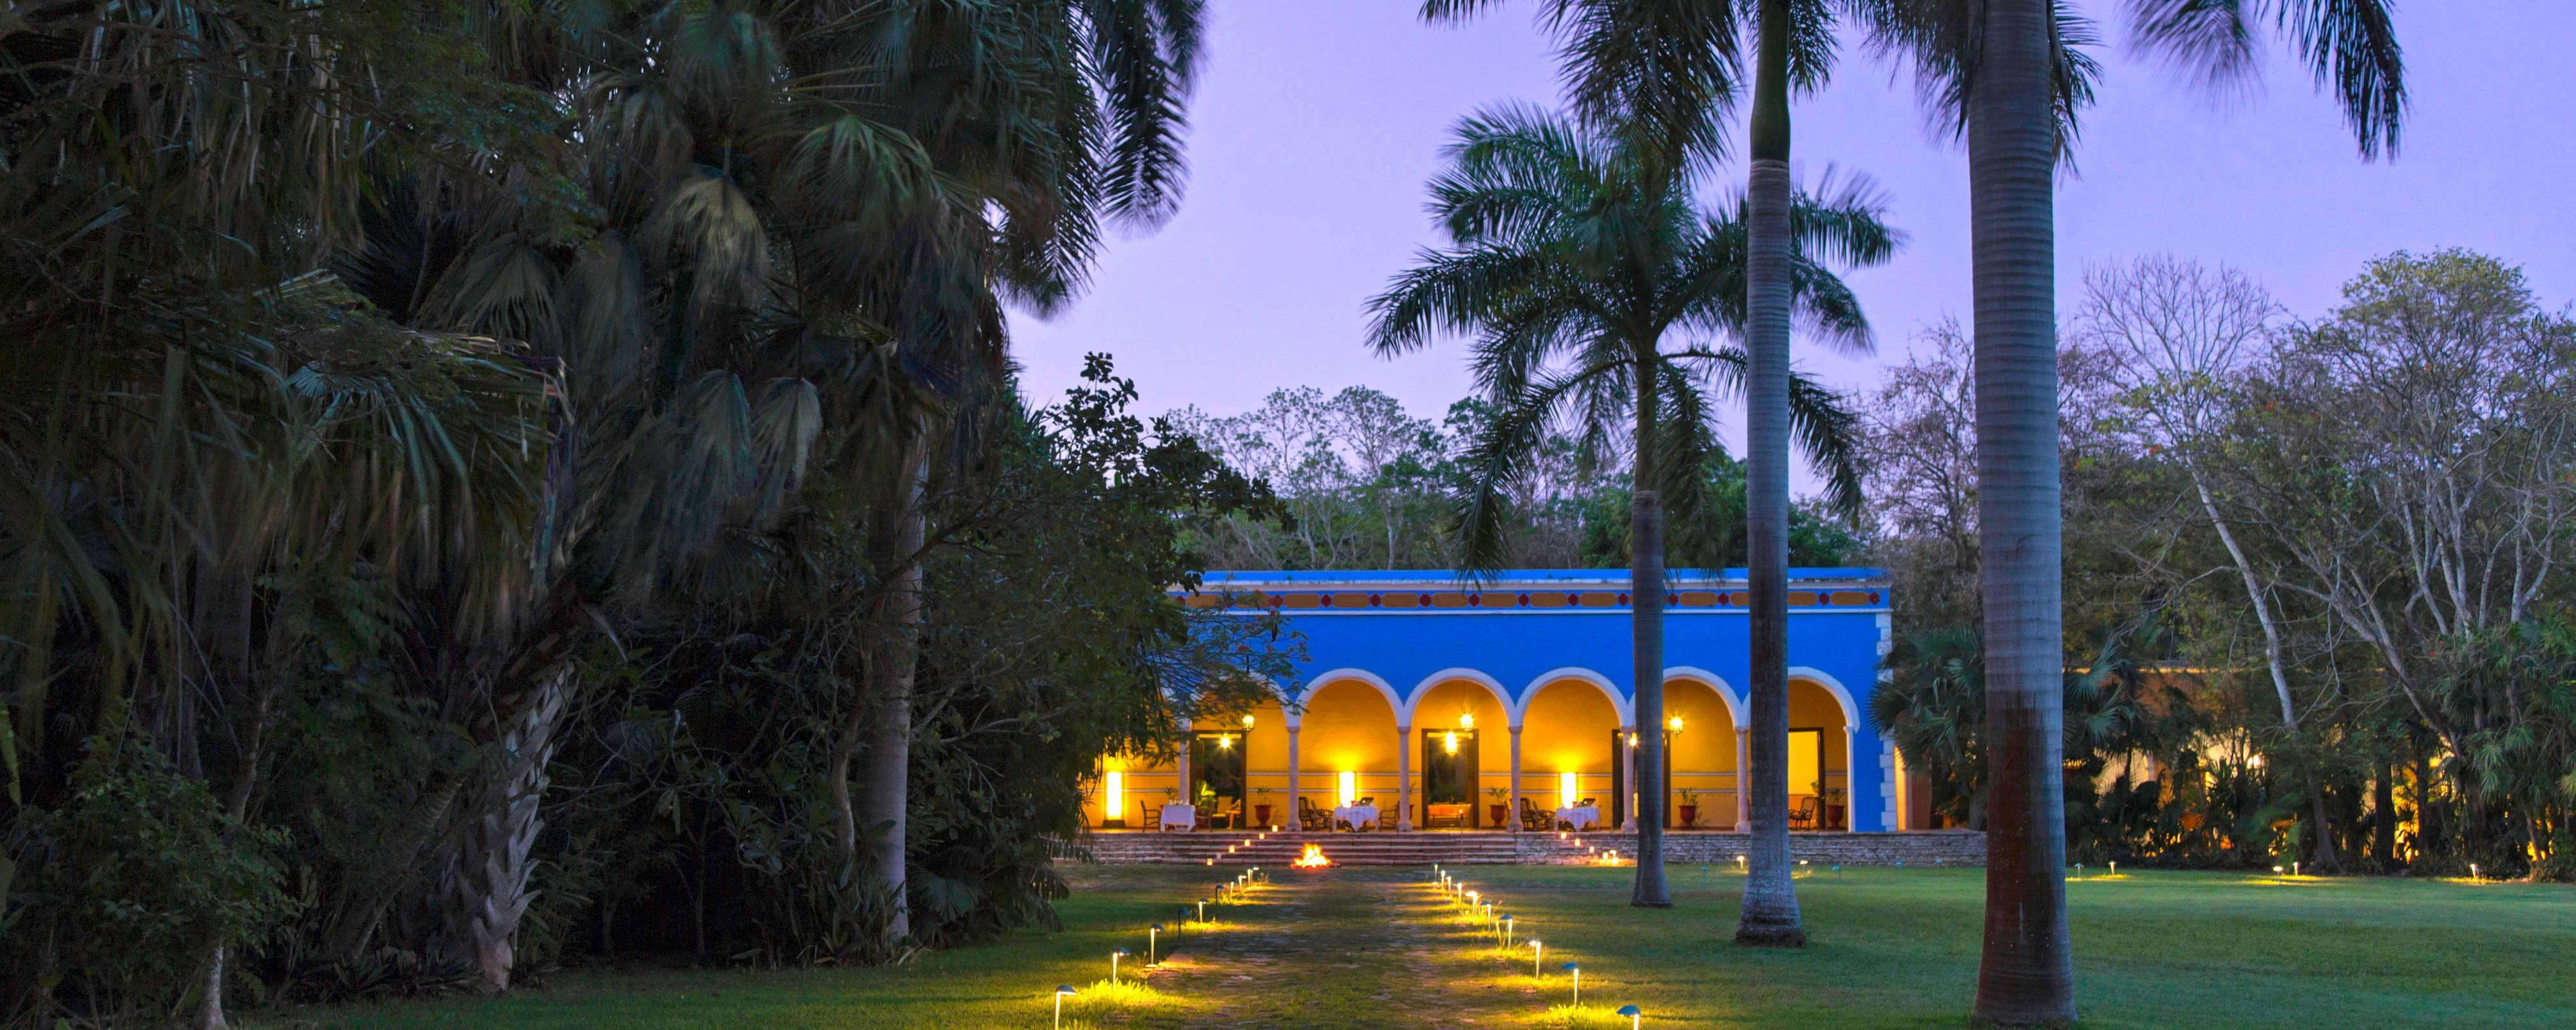 Hacienda Main Entrance